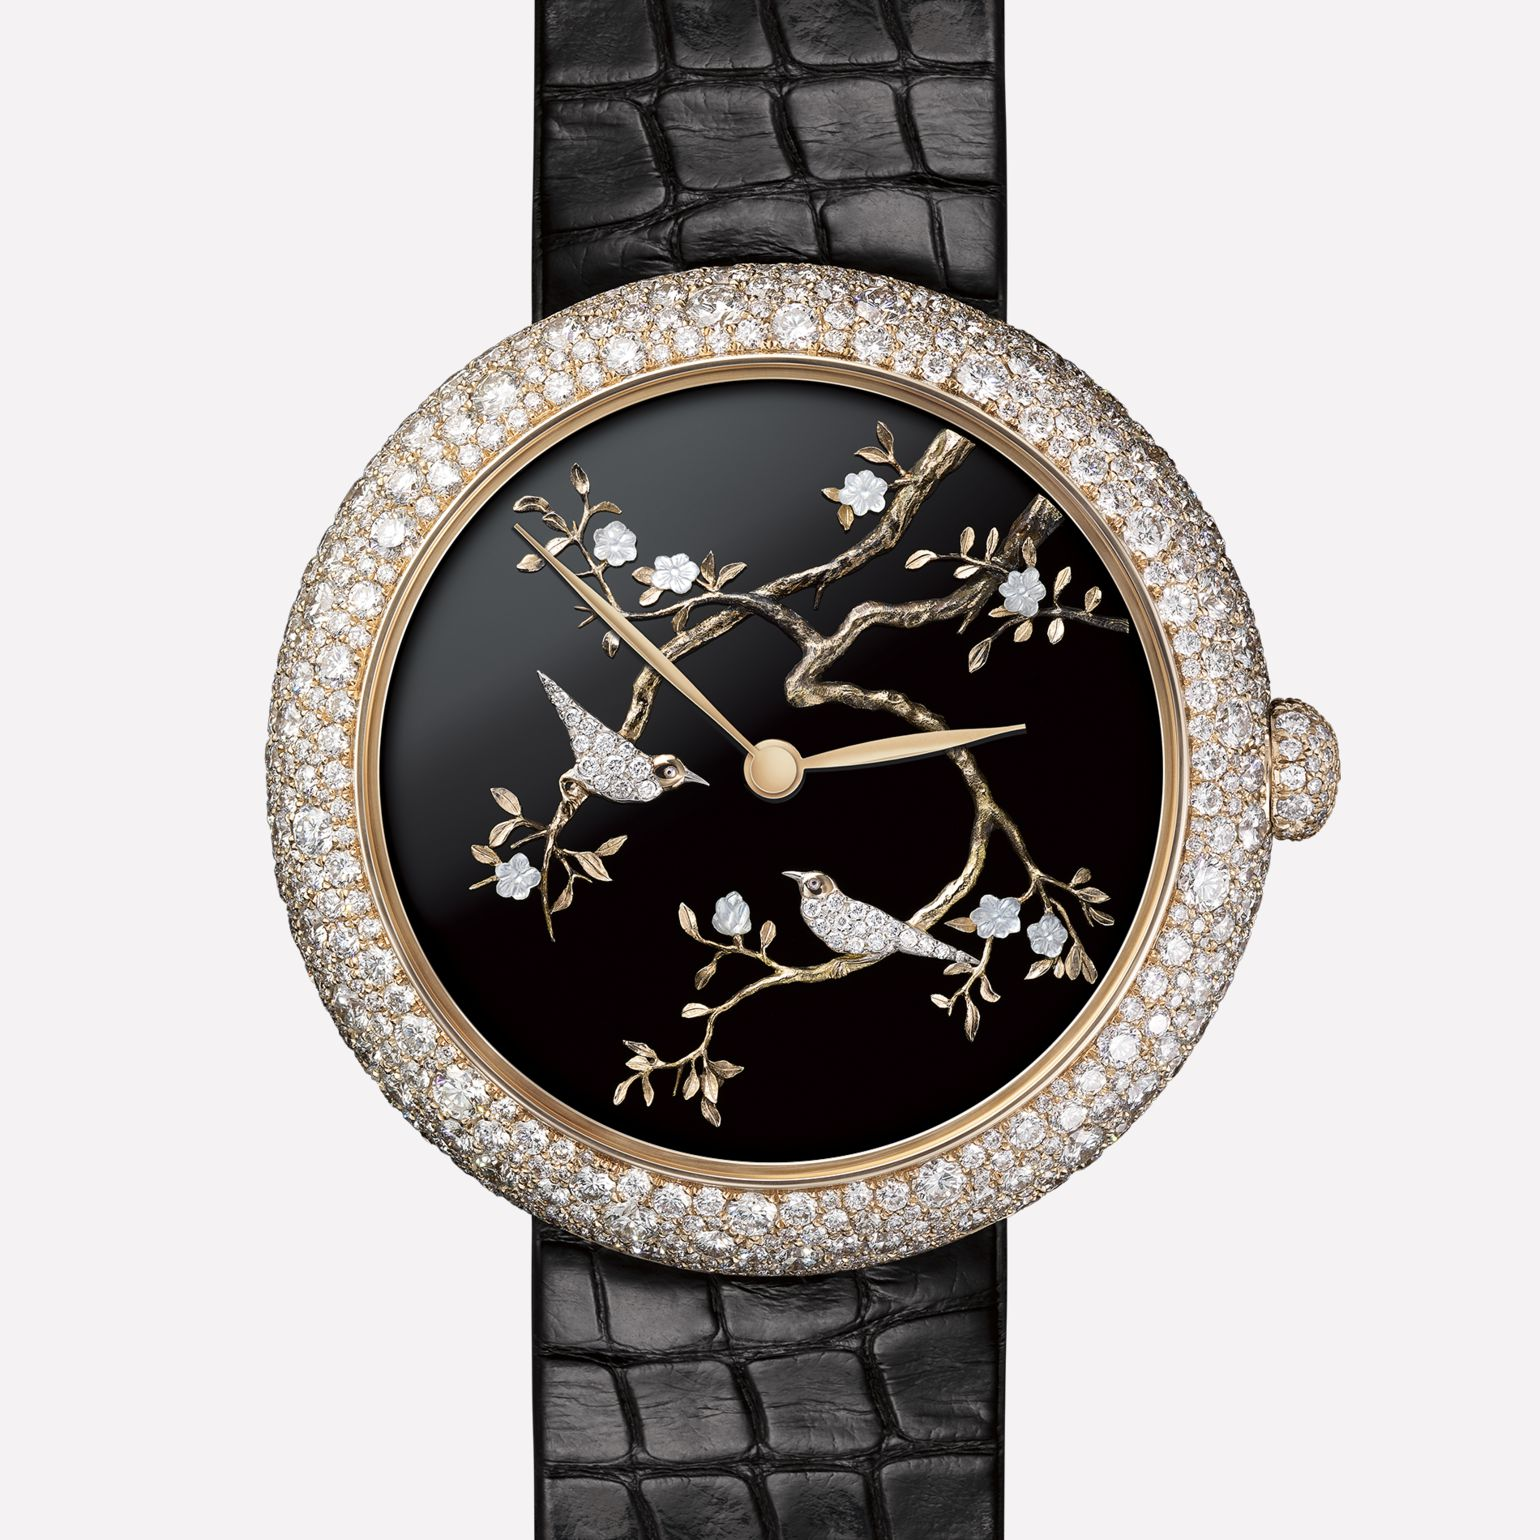 Mademoiselle Privé Watch Amour suspendu : Coromandel Flying Bird created using the sculpted gold technique